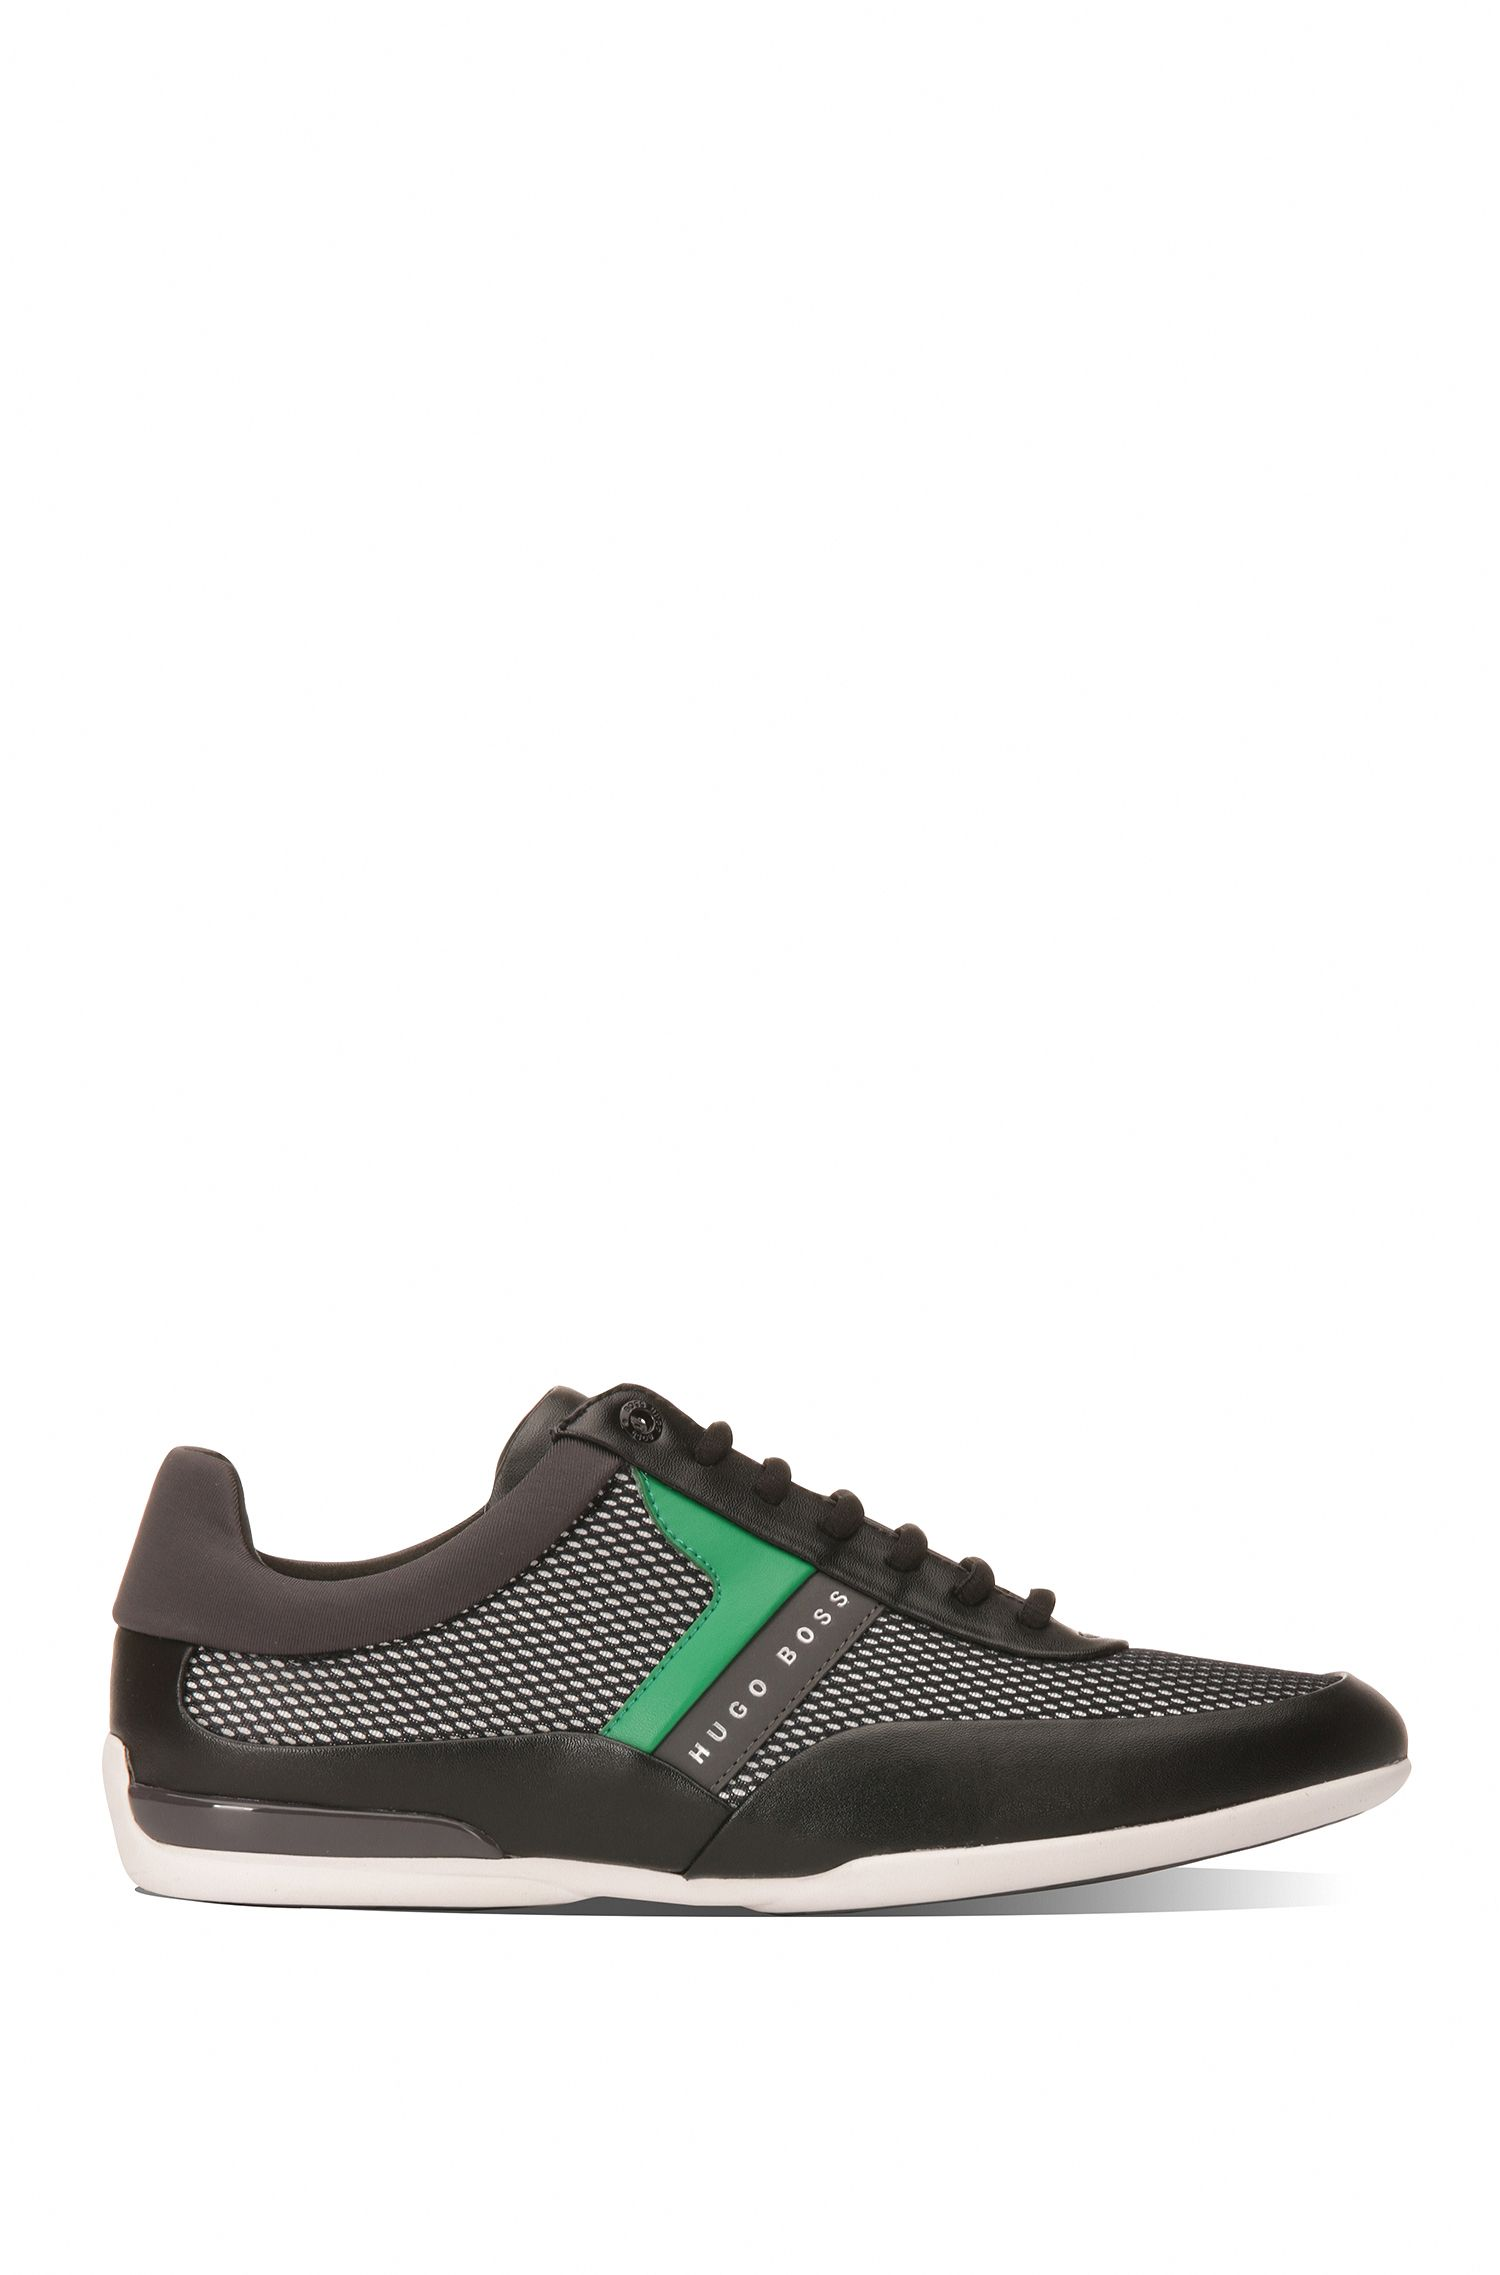 Mesh Leather Sneaker |Space Lowp Nyme